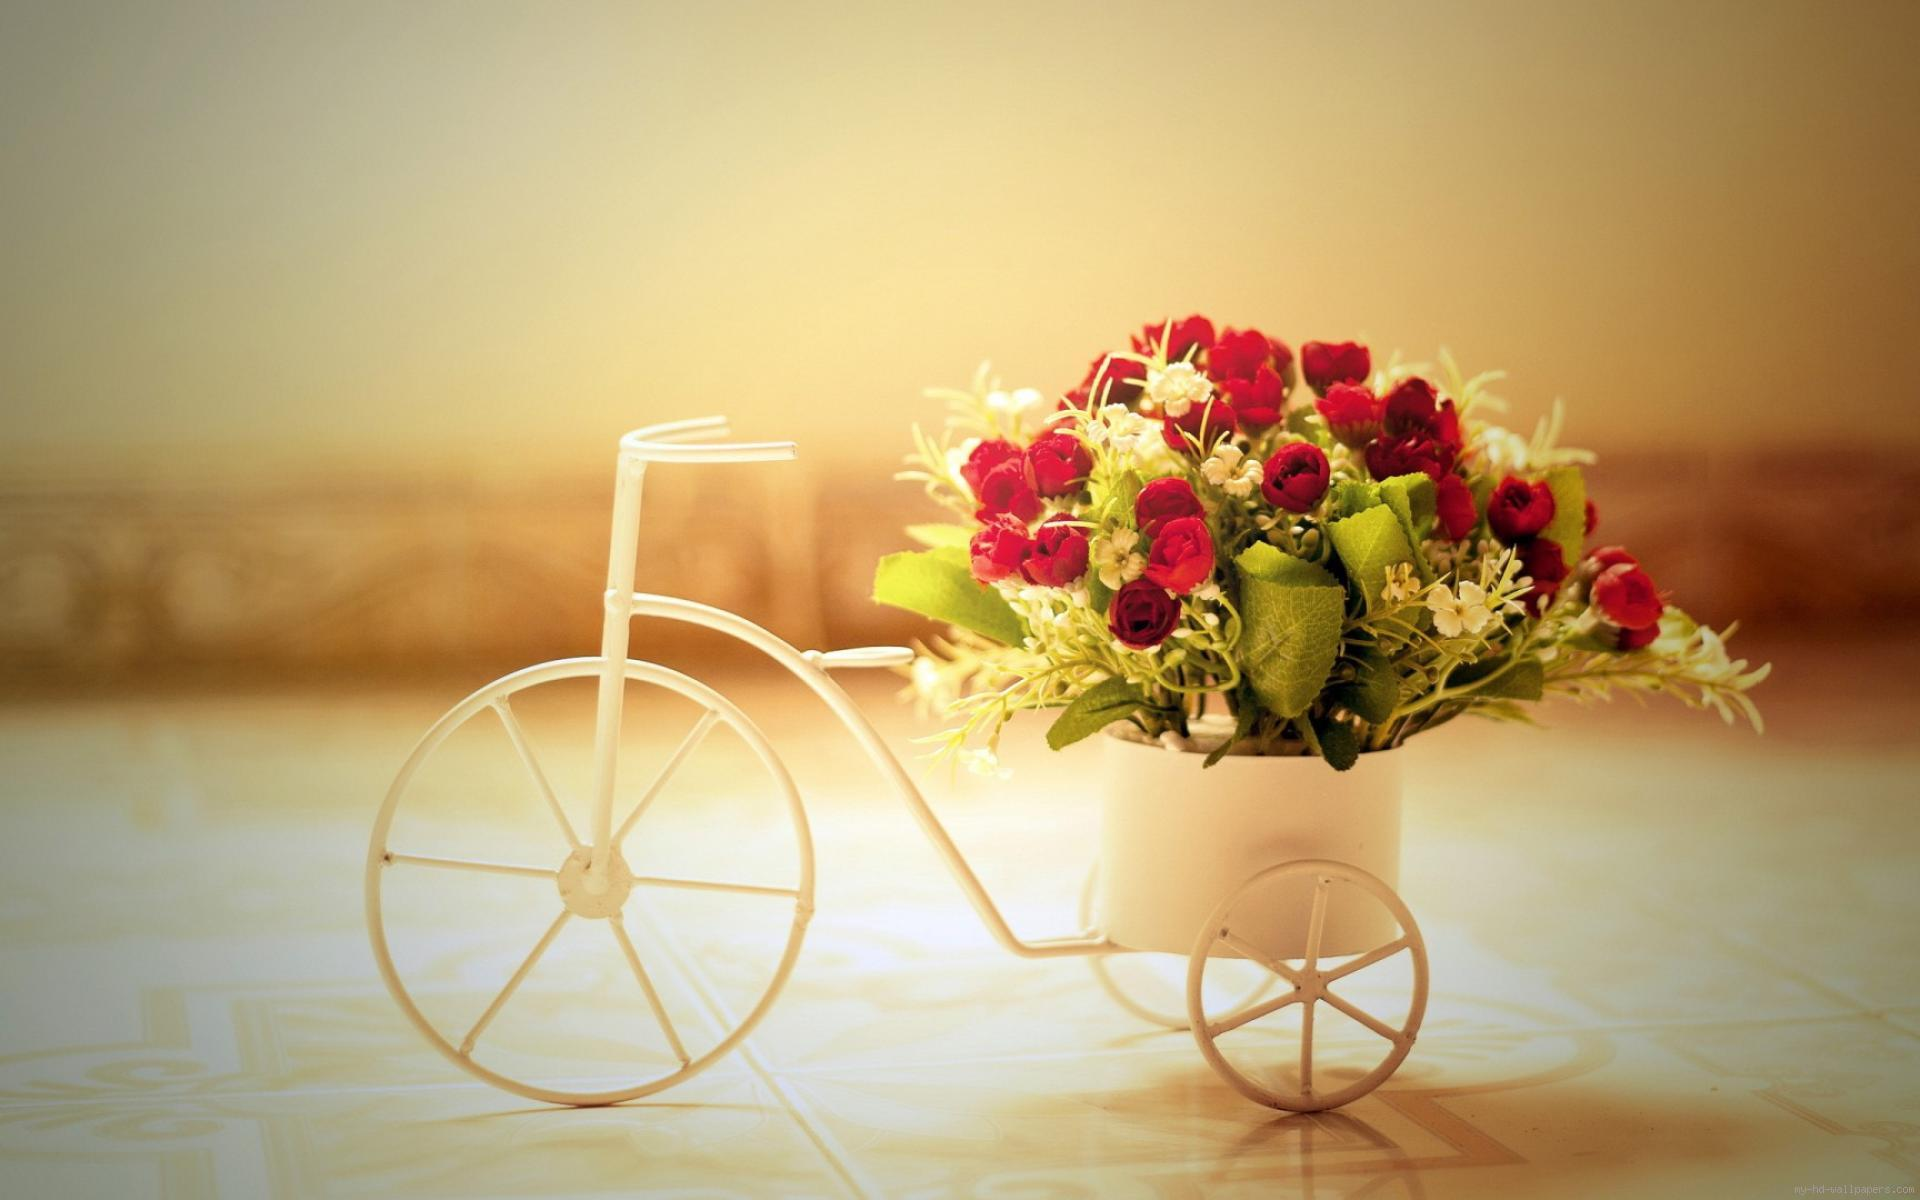 bouquet-of-red-roses-in-a-vase-bike-1080P-wallpaper